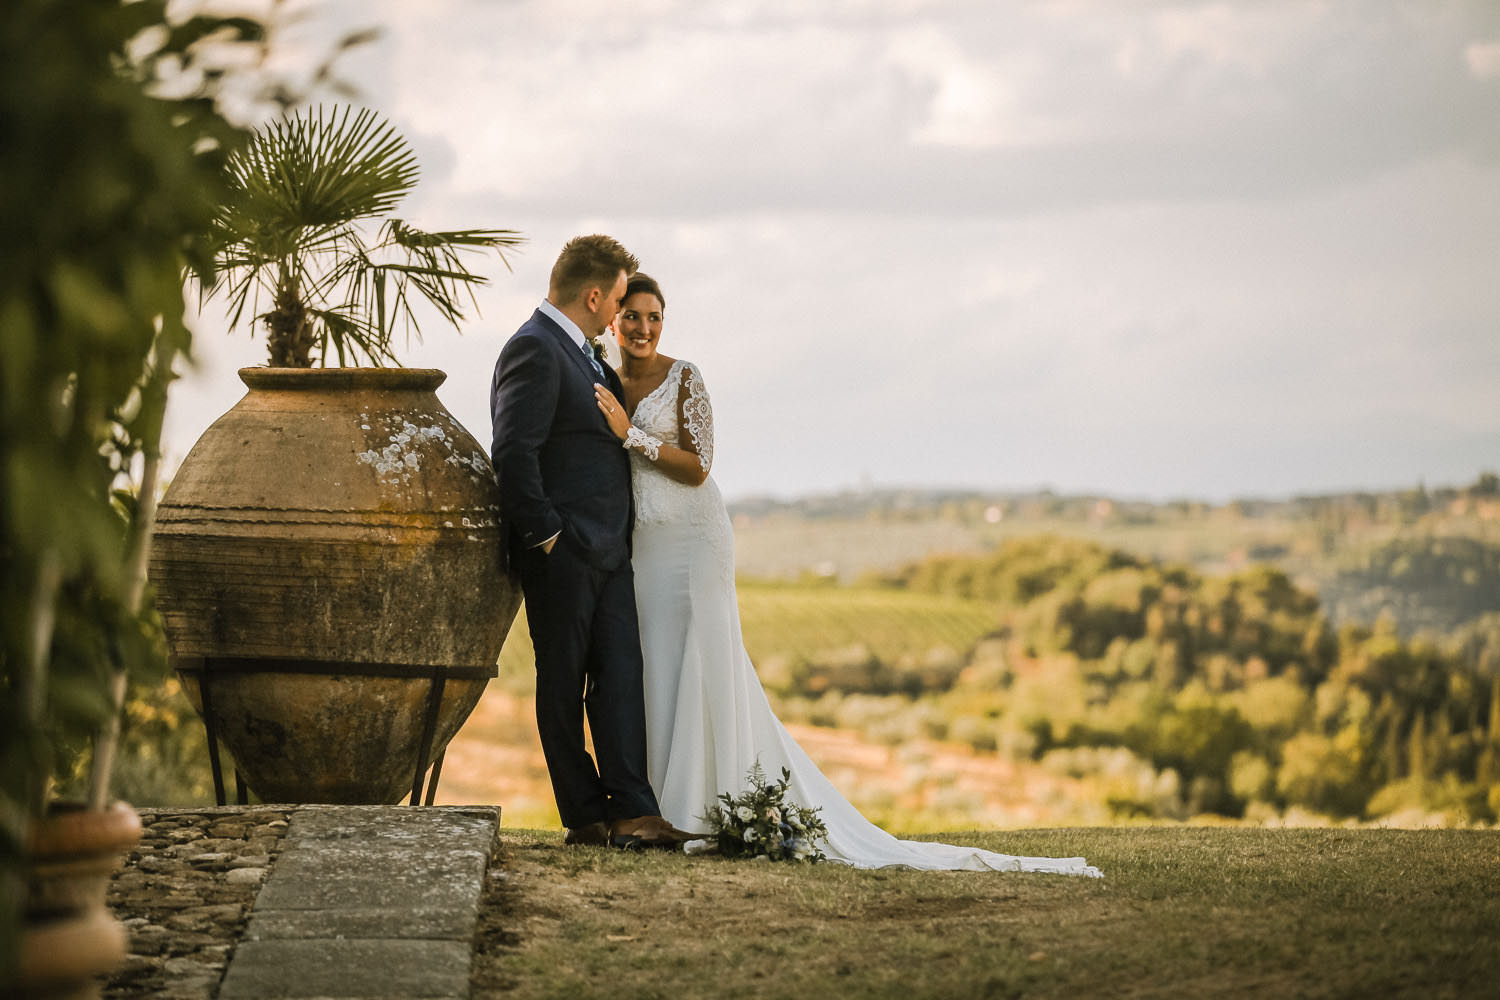 Bride and Groom in Tuscany hills